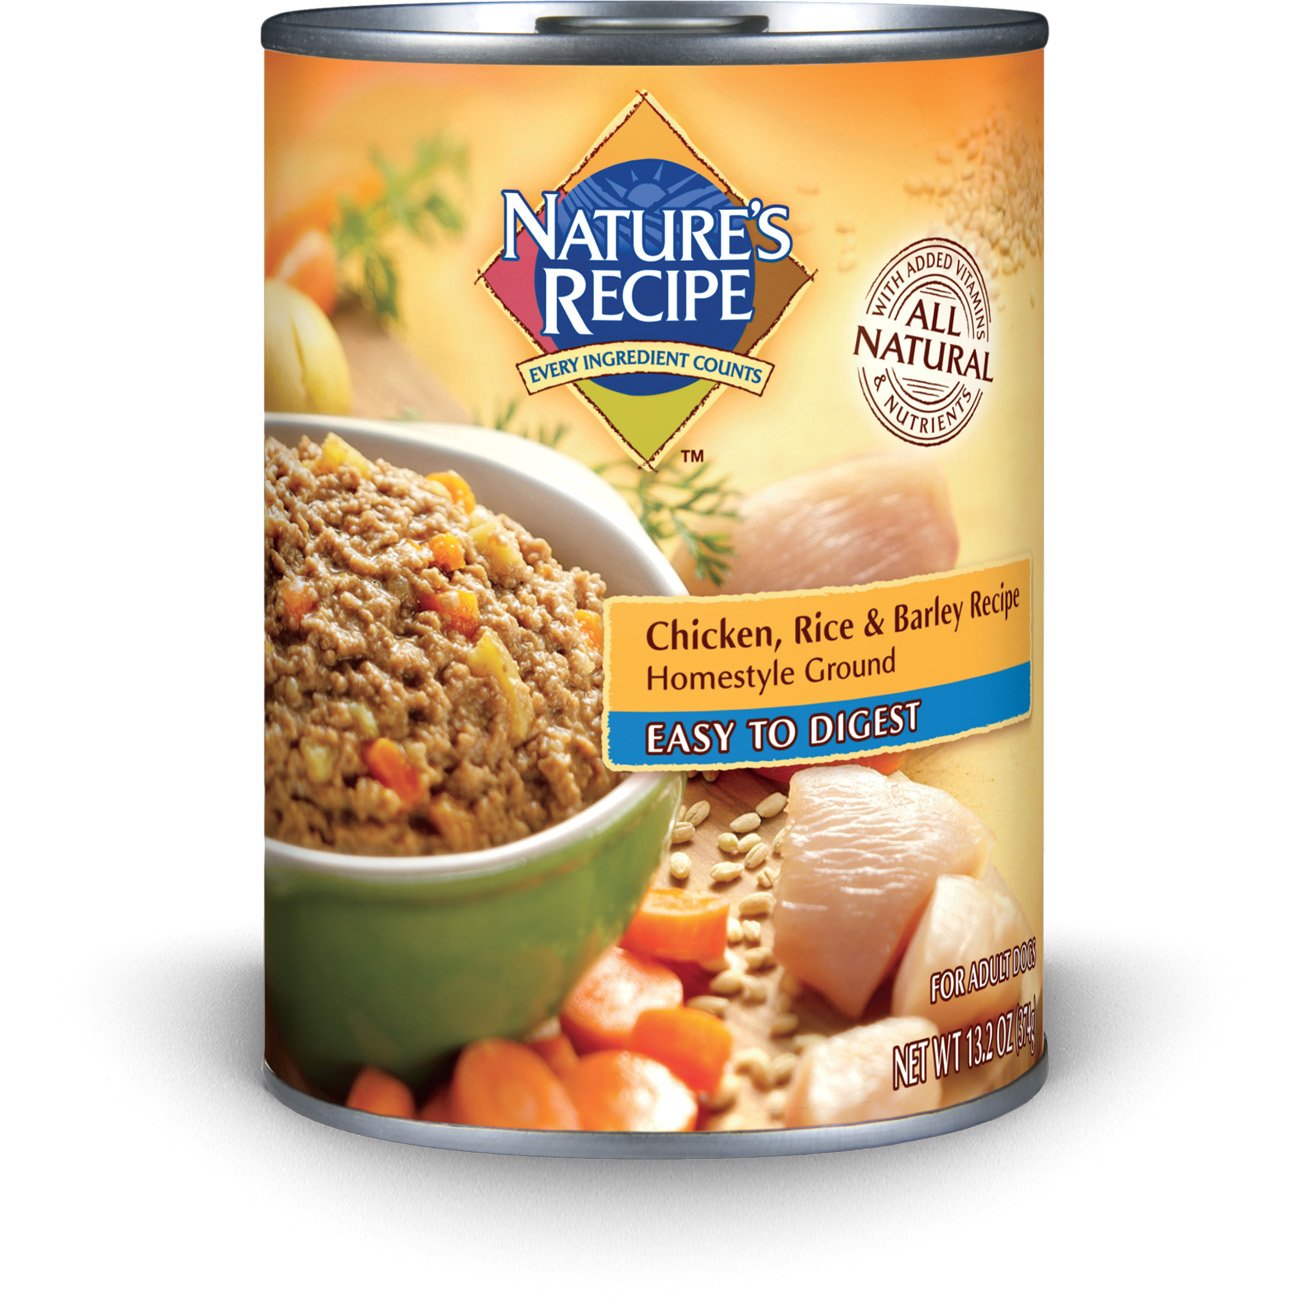 Natures recipe canned dog food for adult dog easy to digest natures recipe canned dog food for adult dog easy to digest chicken rice and barley recipe homestyle ground 132 ounce cans pack of 12 forumfinder Choice Image